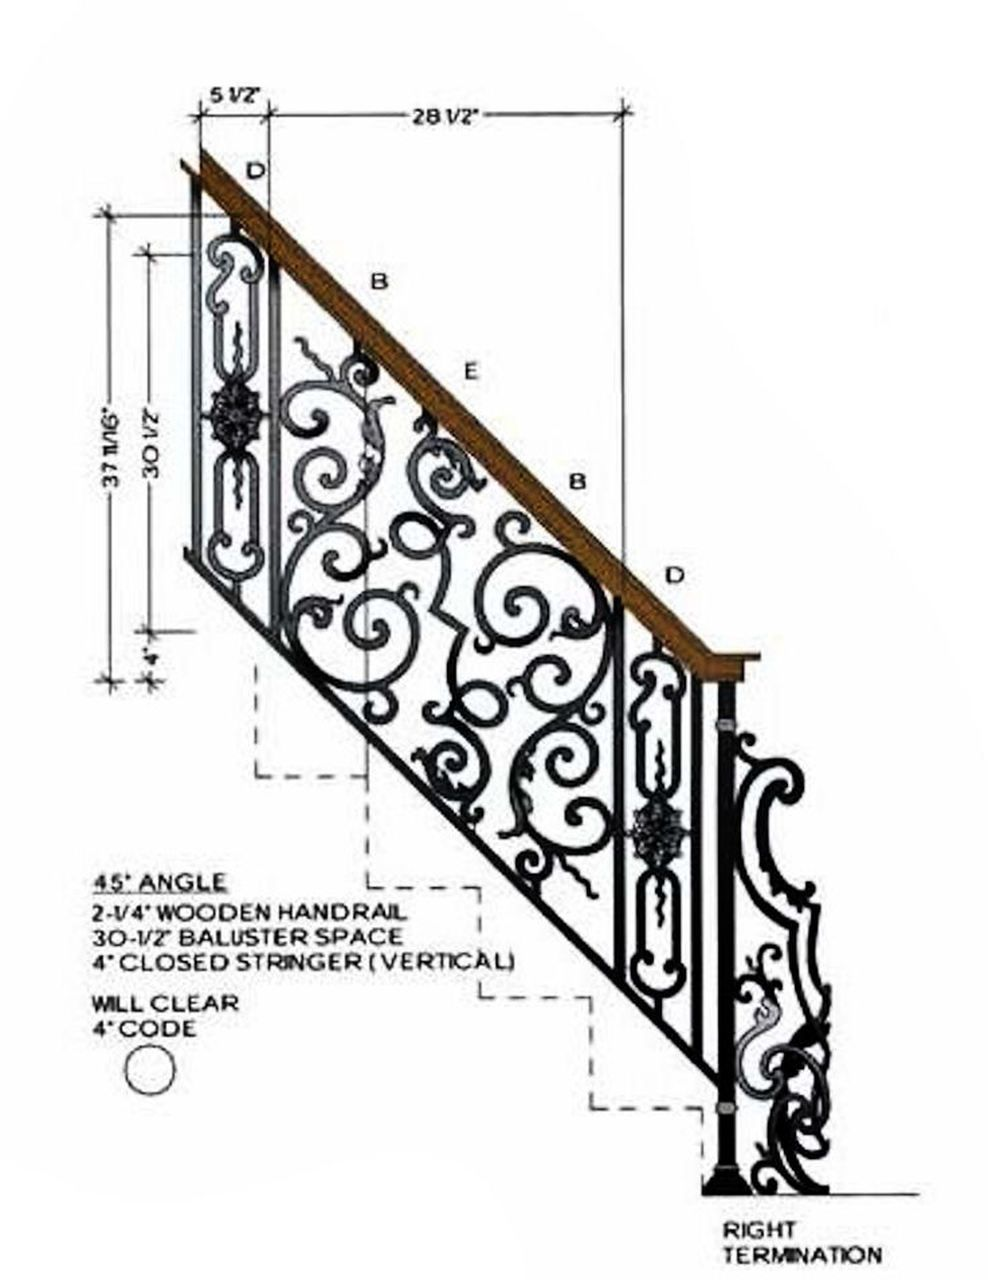 Hfbx Term Rt Right Hand Bordeaux Term Stair Railing Design Iron